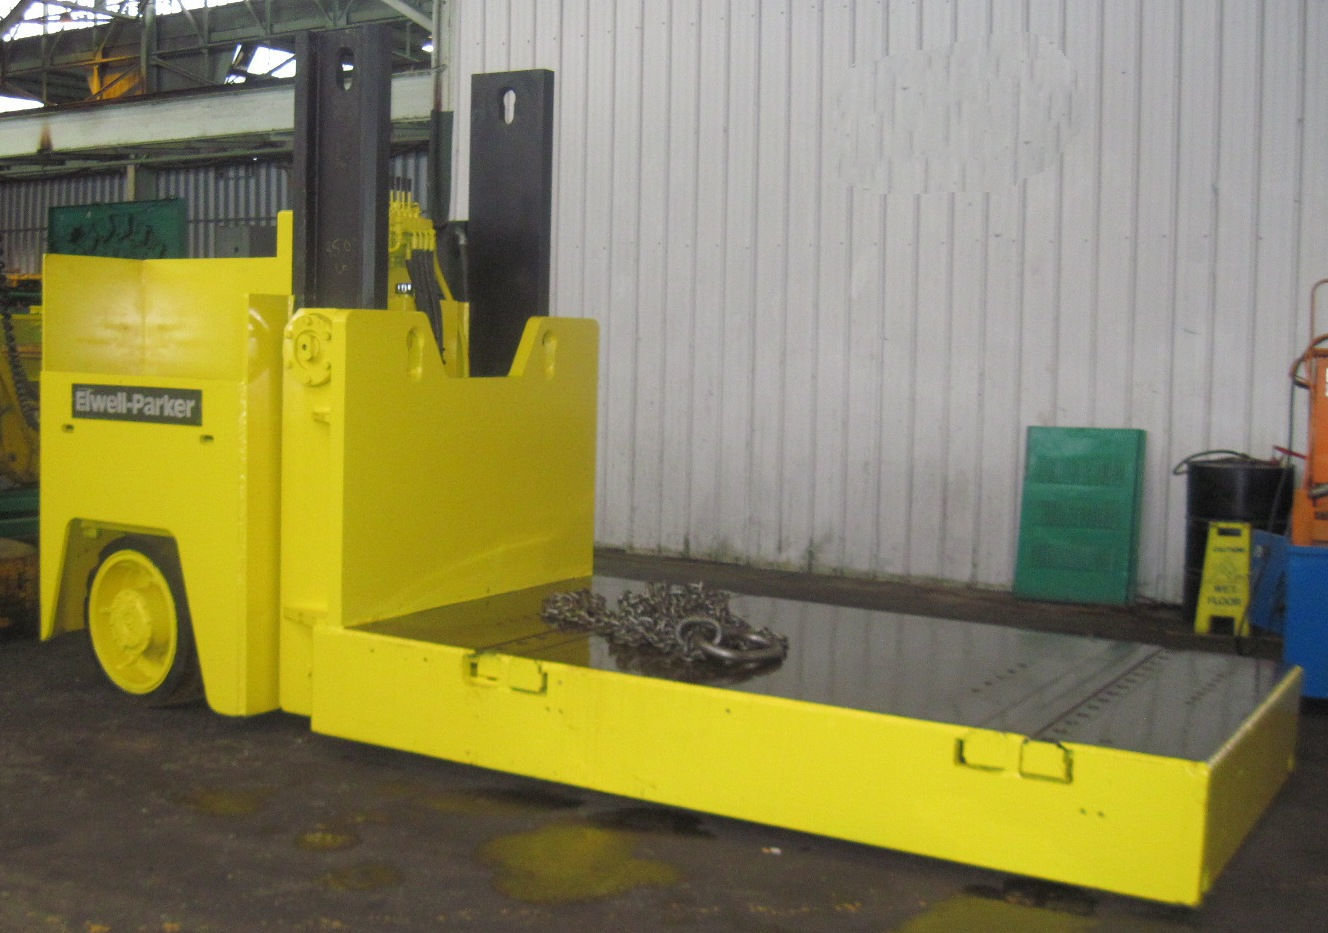 30,000lb. Elwell Parker Hydraulic Die Cart For Sale